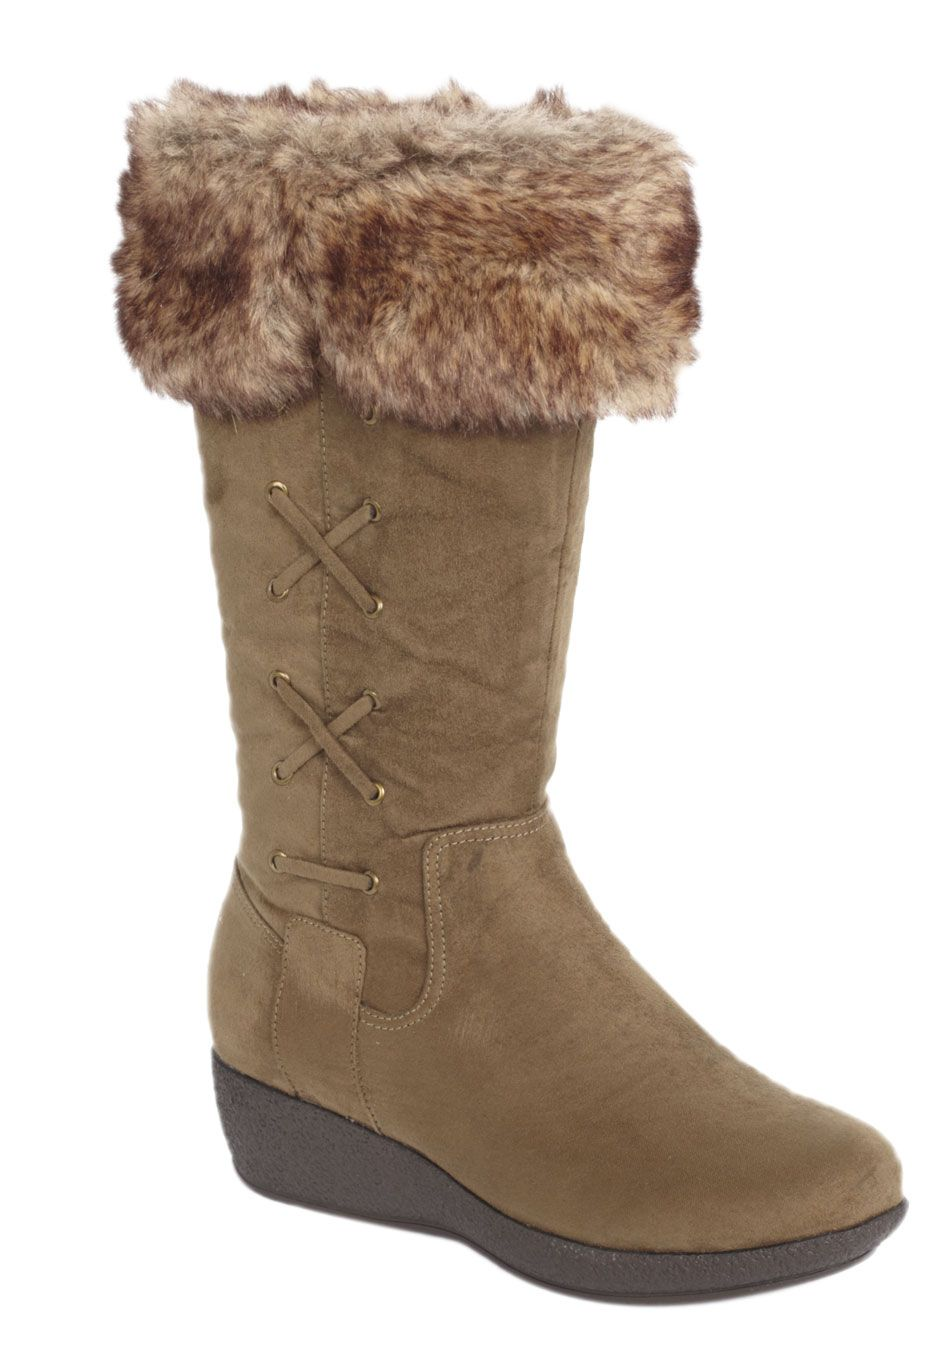 5315f48b3d1 Plus Size Dancer faux fur cuff wide-calf wedge boot by Comfortview ...